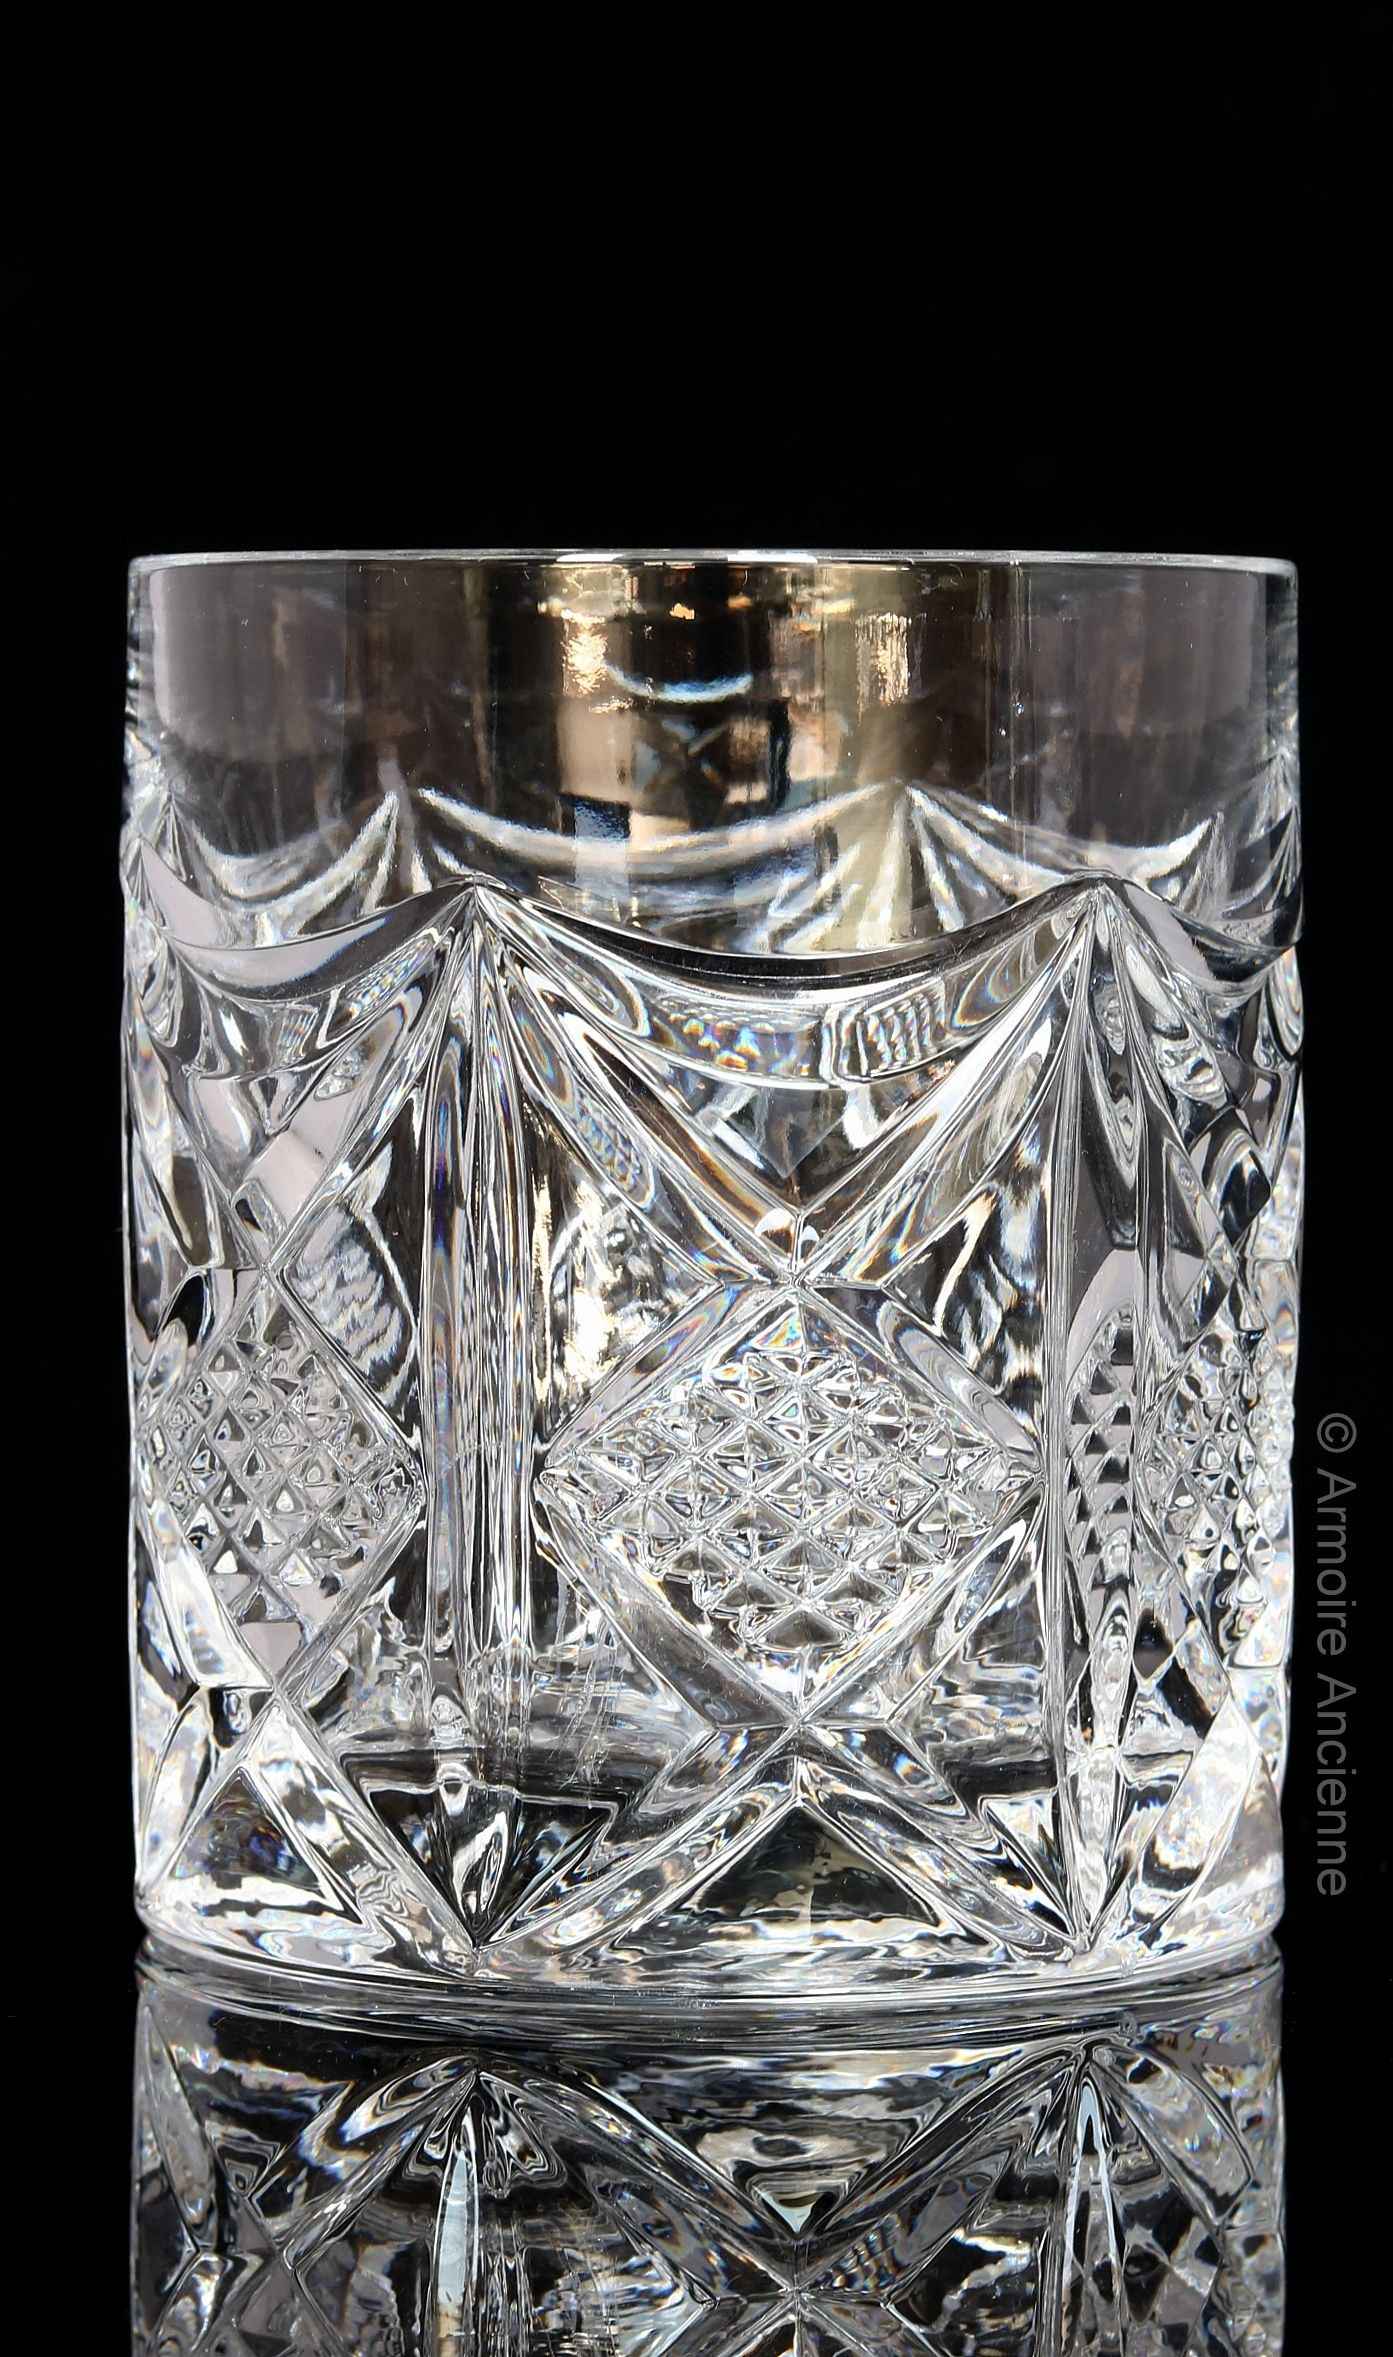 2x Crystal Whiskey Glasses Whisky Low Ball Glasses Old Fashioned Tumblers Crystal Whiskey Glasses Vintage Crystal Glasses Crystal Drinkware